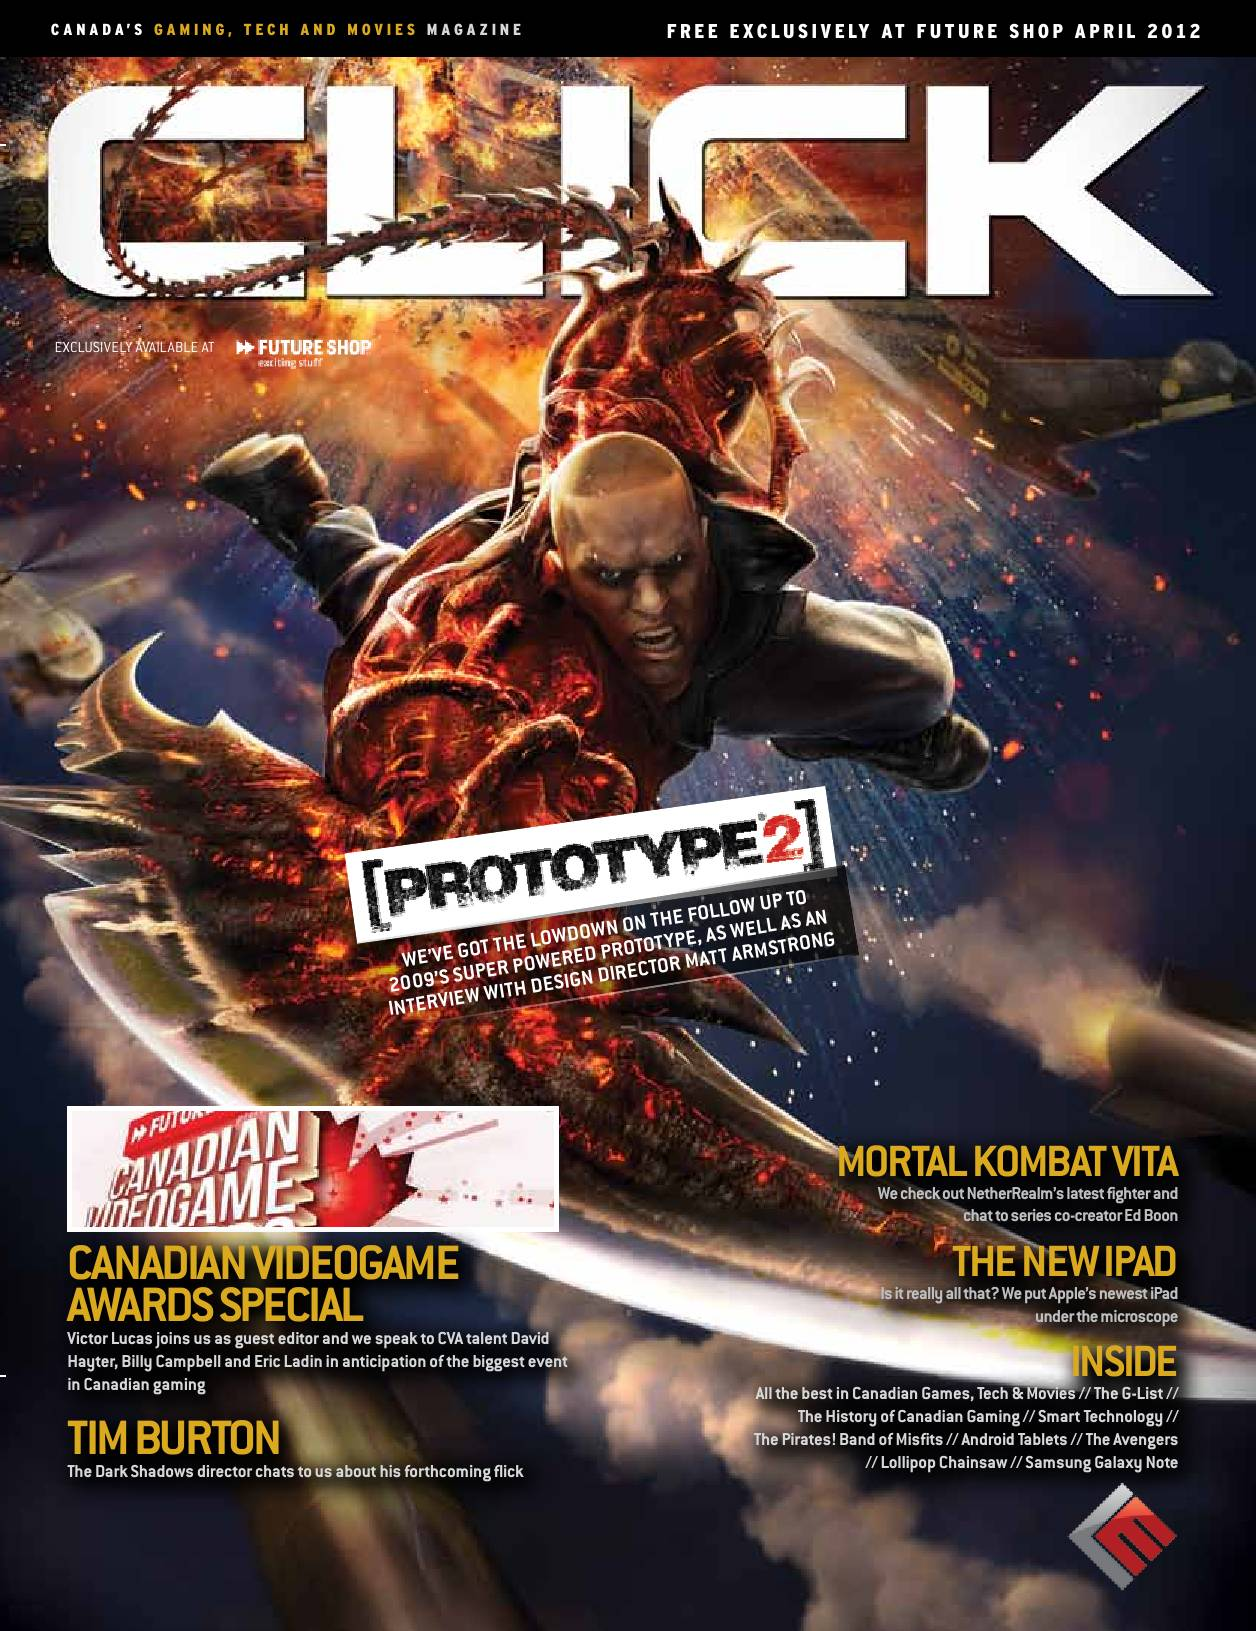 Click Issue 2